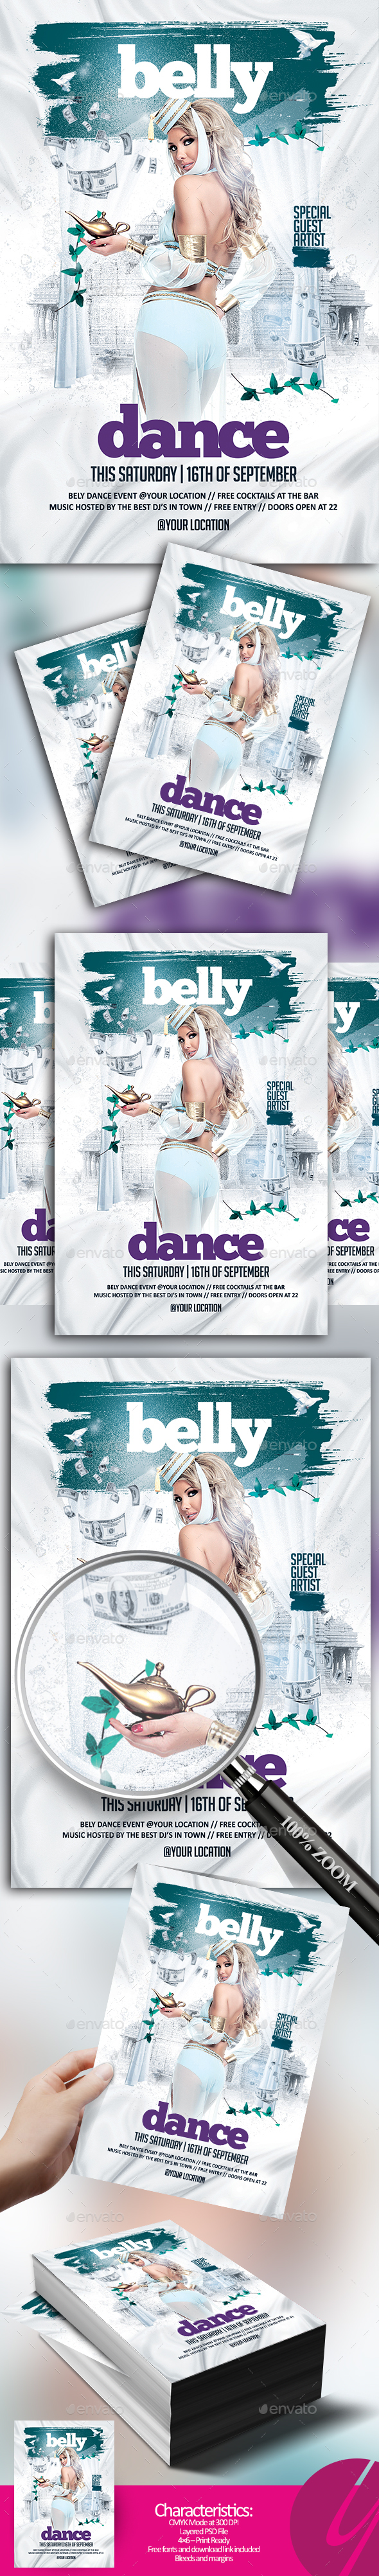 Belly Dance Party Flyer - Clubs & Parties Events